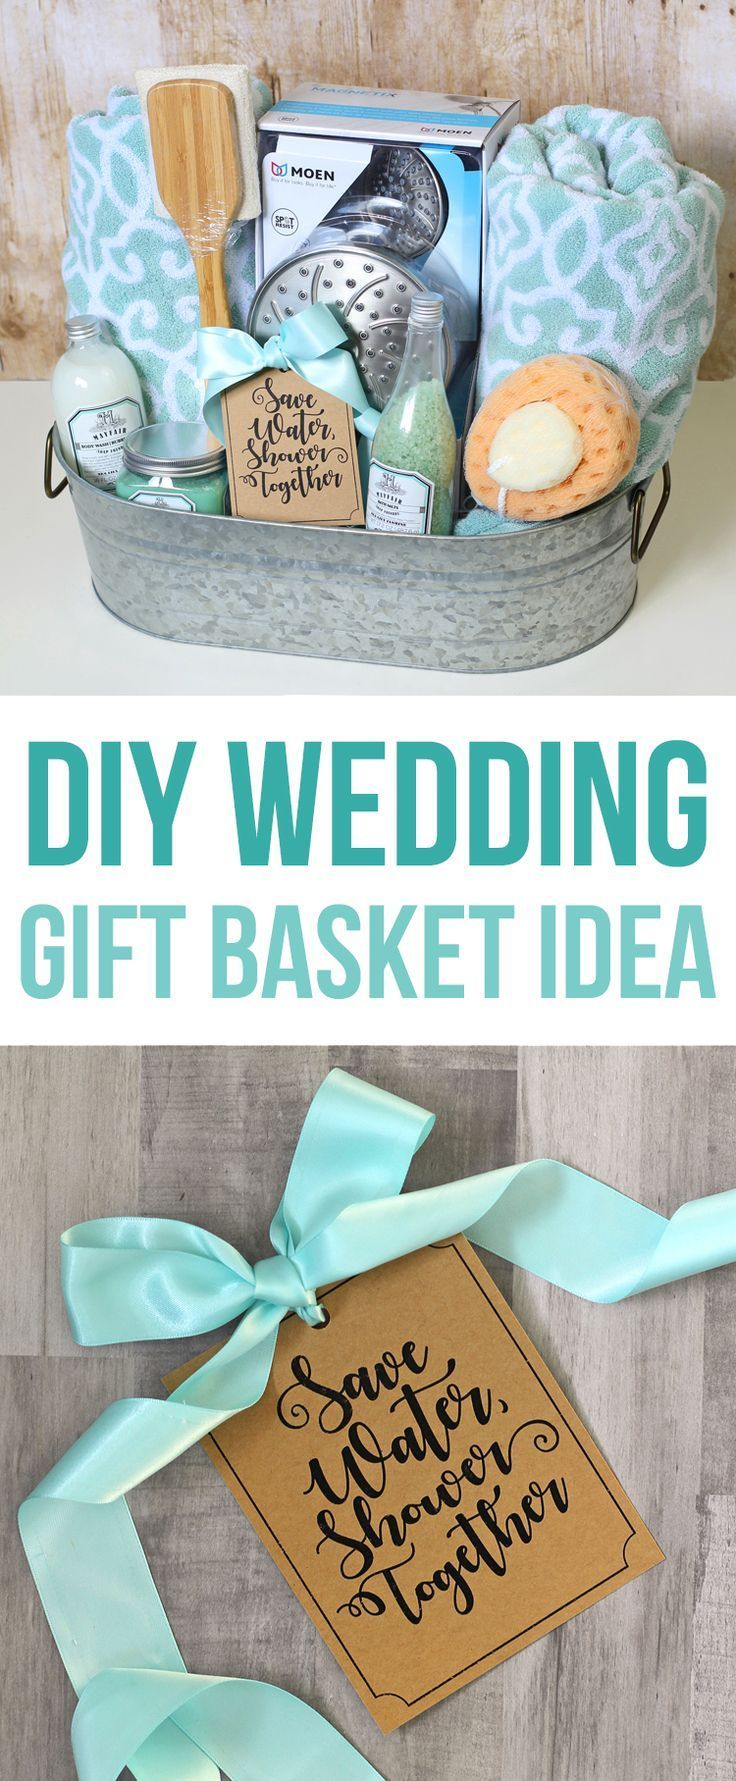 Fullsize Of Diy Wedding Gifts